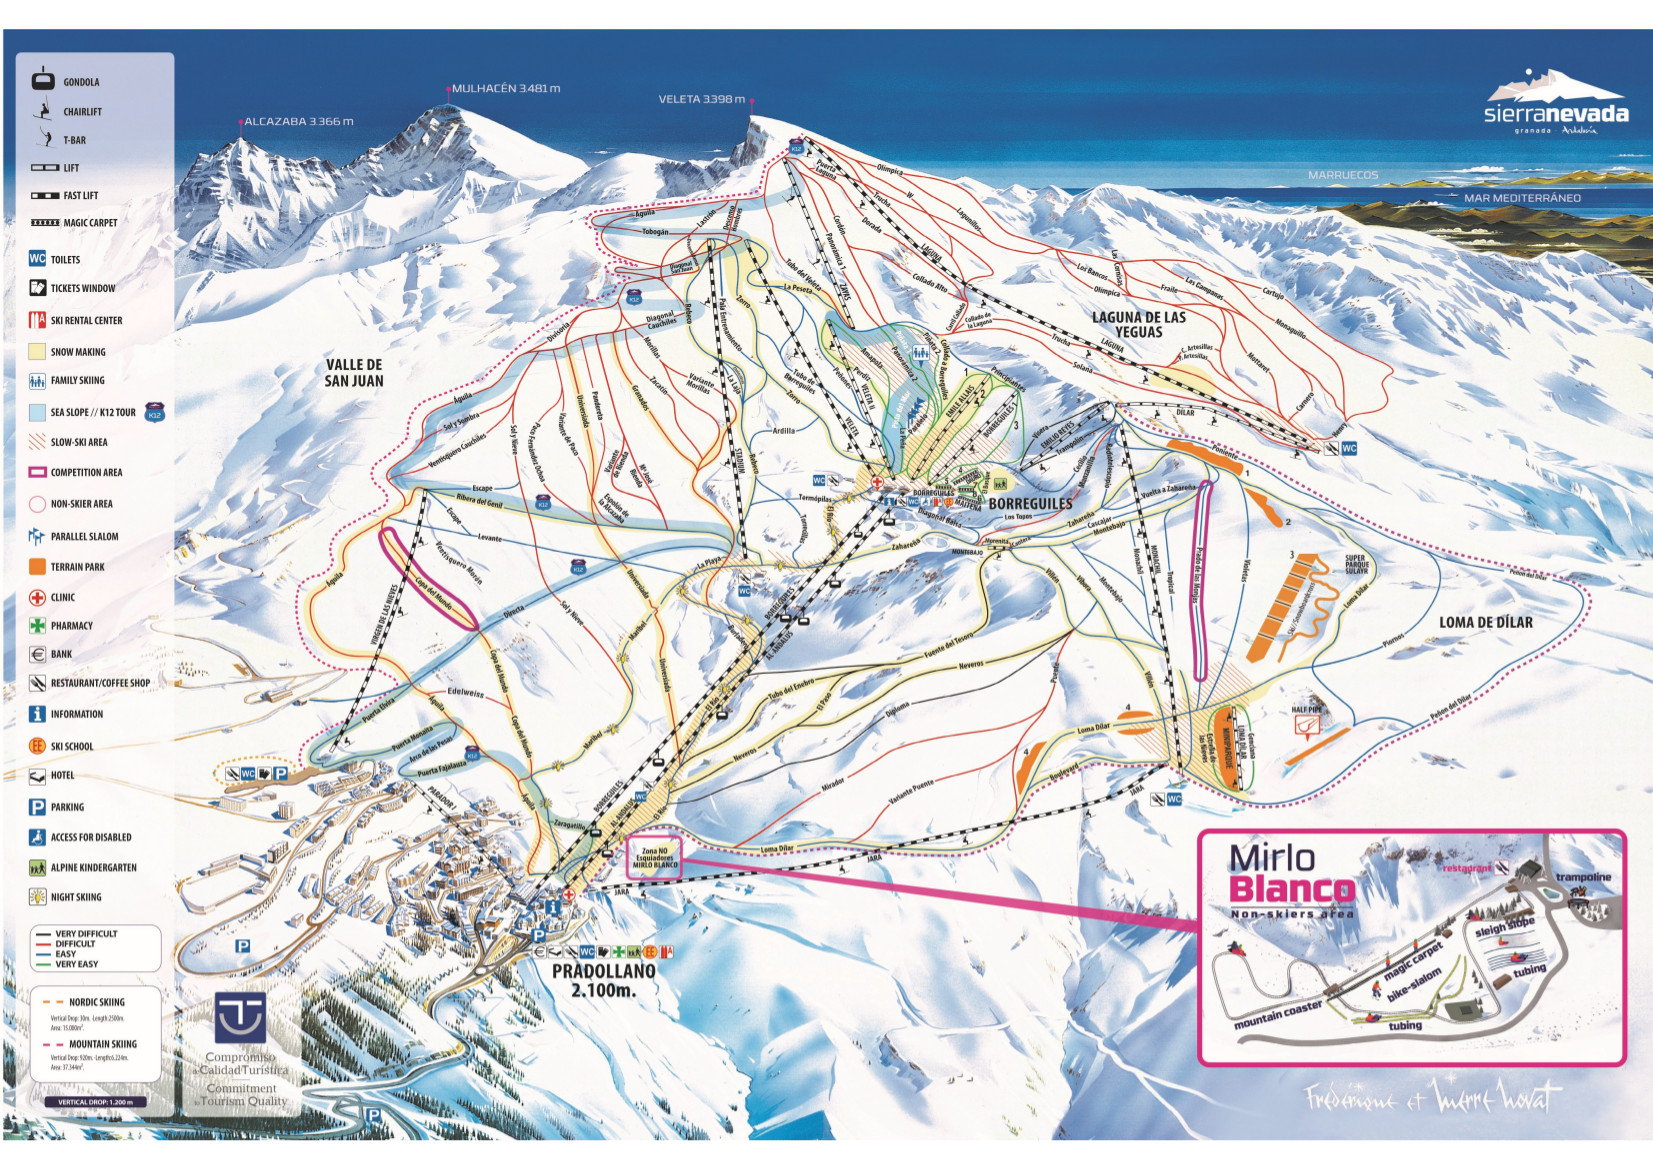 Sierra Nevada Piste / Trail Map